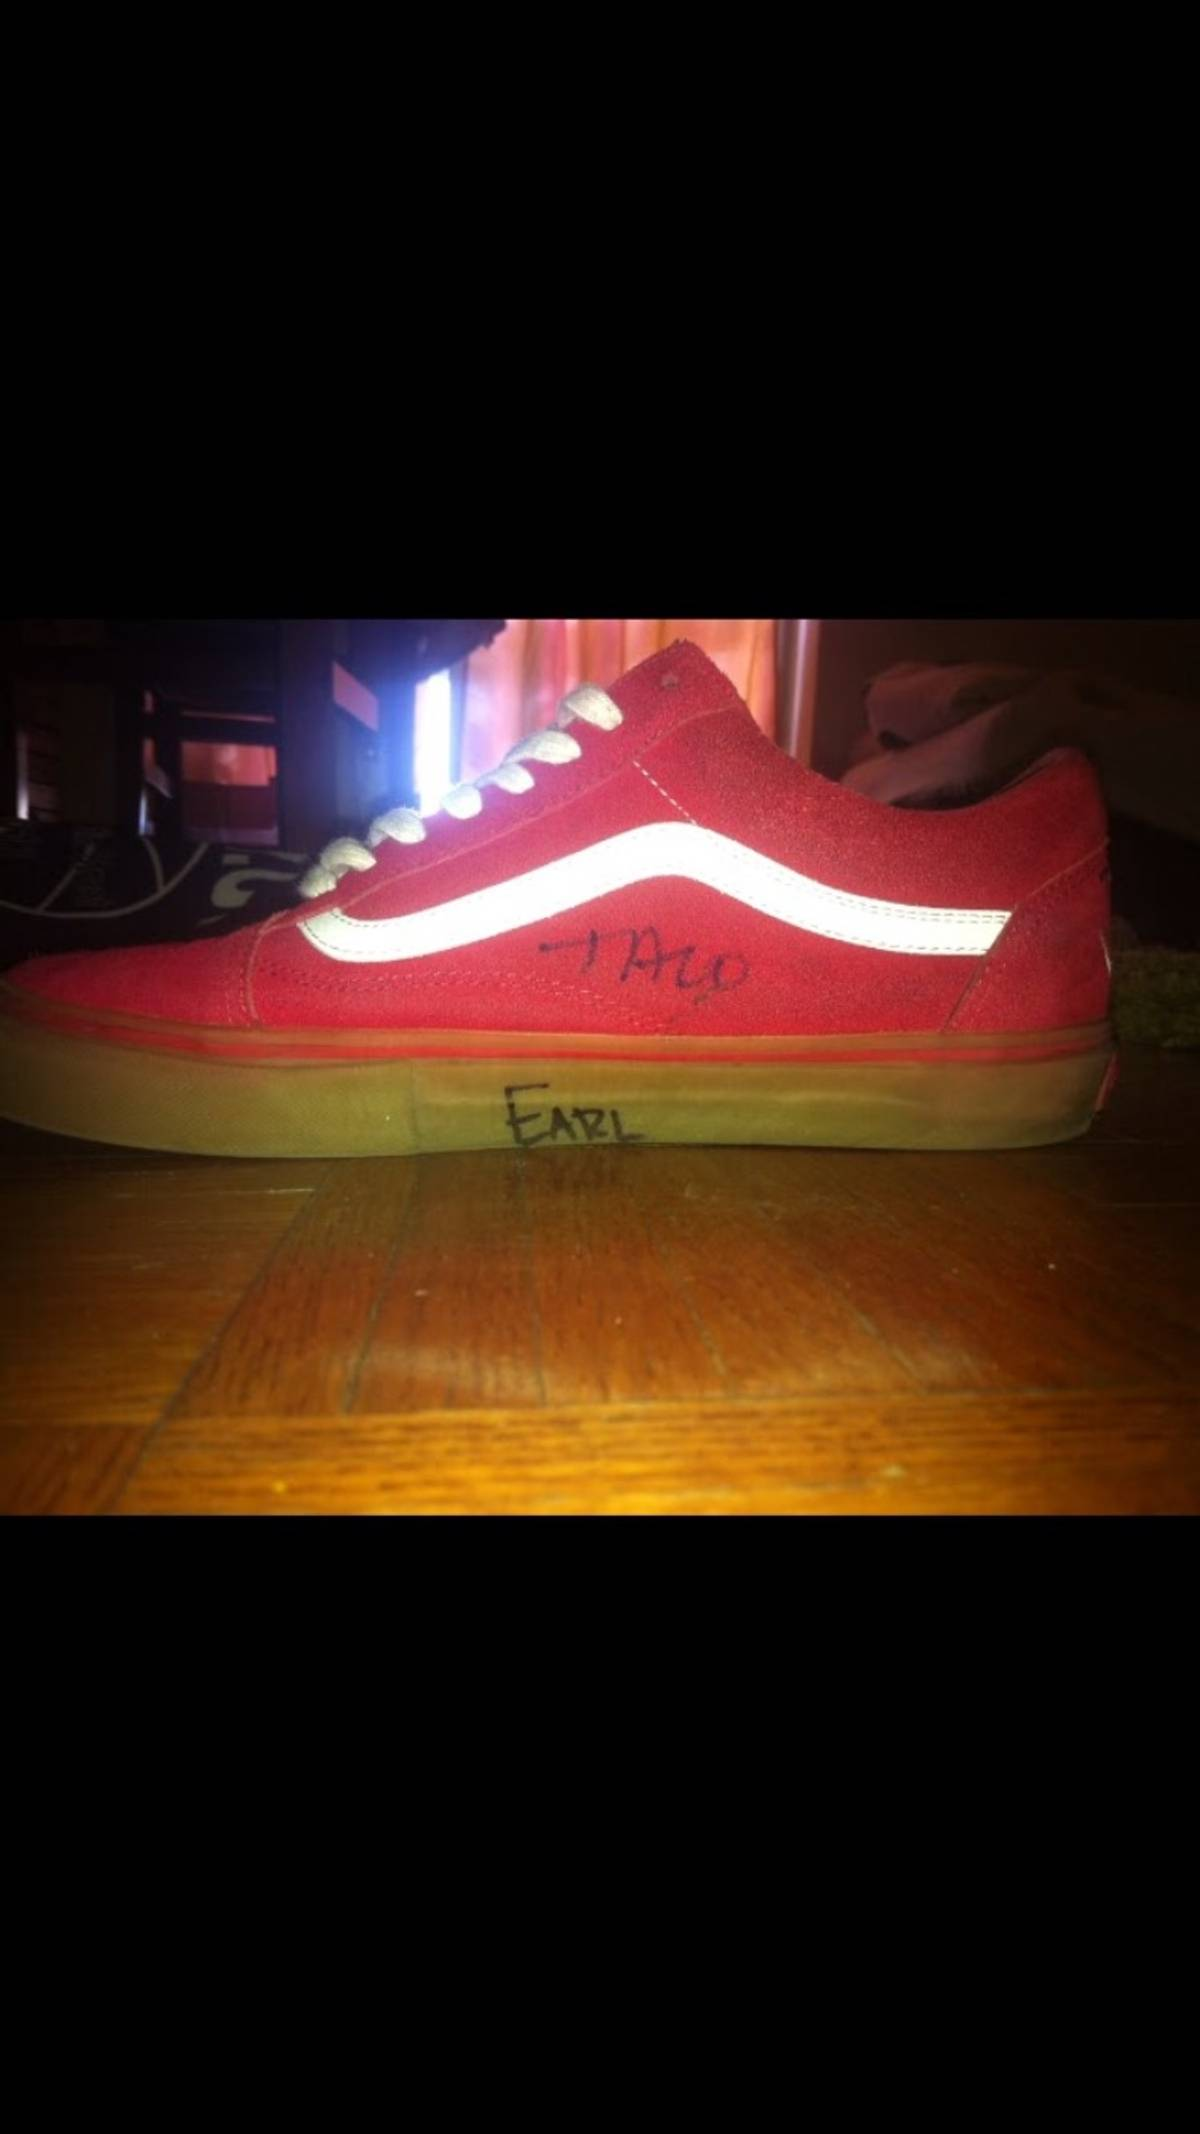 d61c958cdb10 Vans SIGNED GOLF WANG ODD FUTURE 1ST EDITION VANS Size 10 - Low-Top  Sneakers for Sale - Grailed